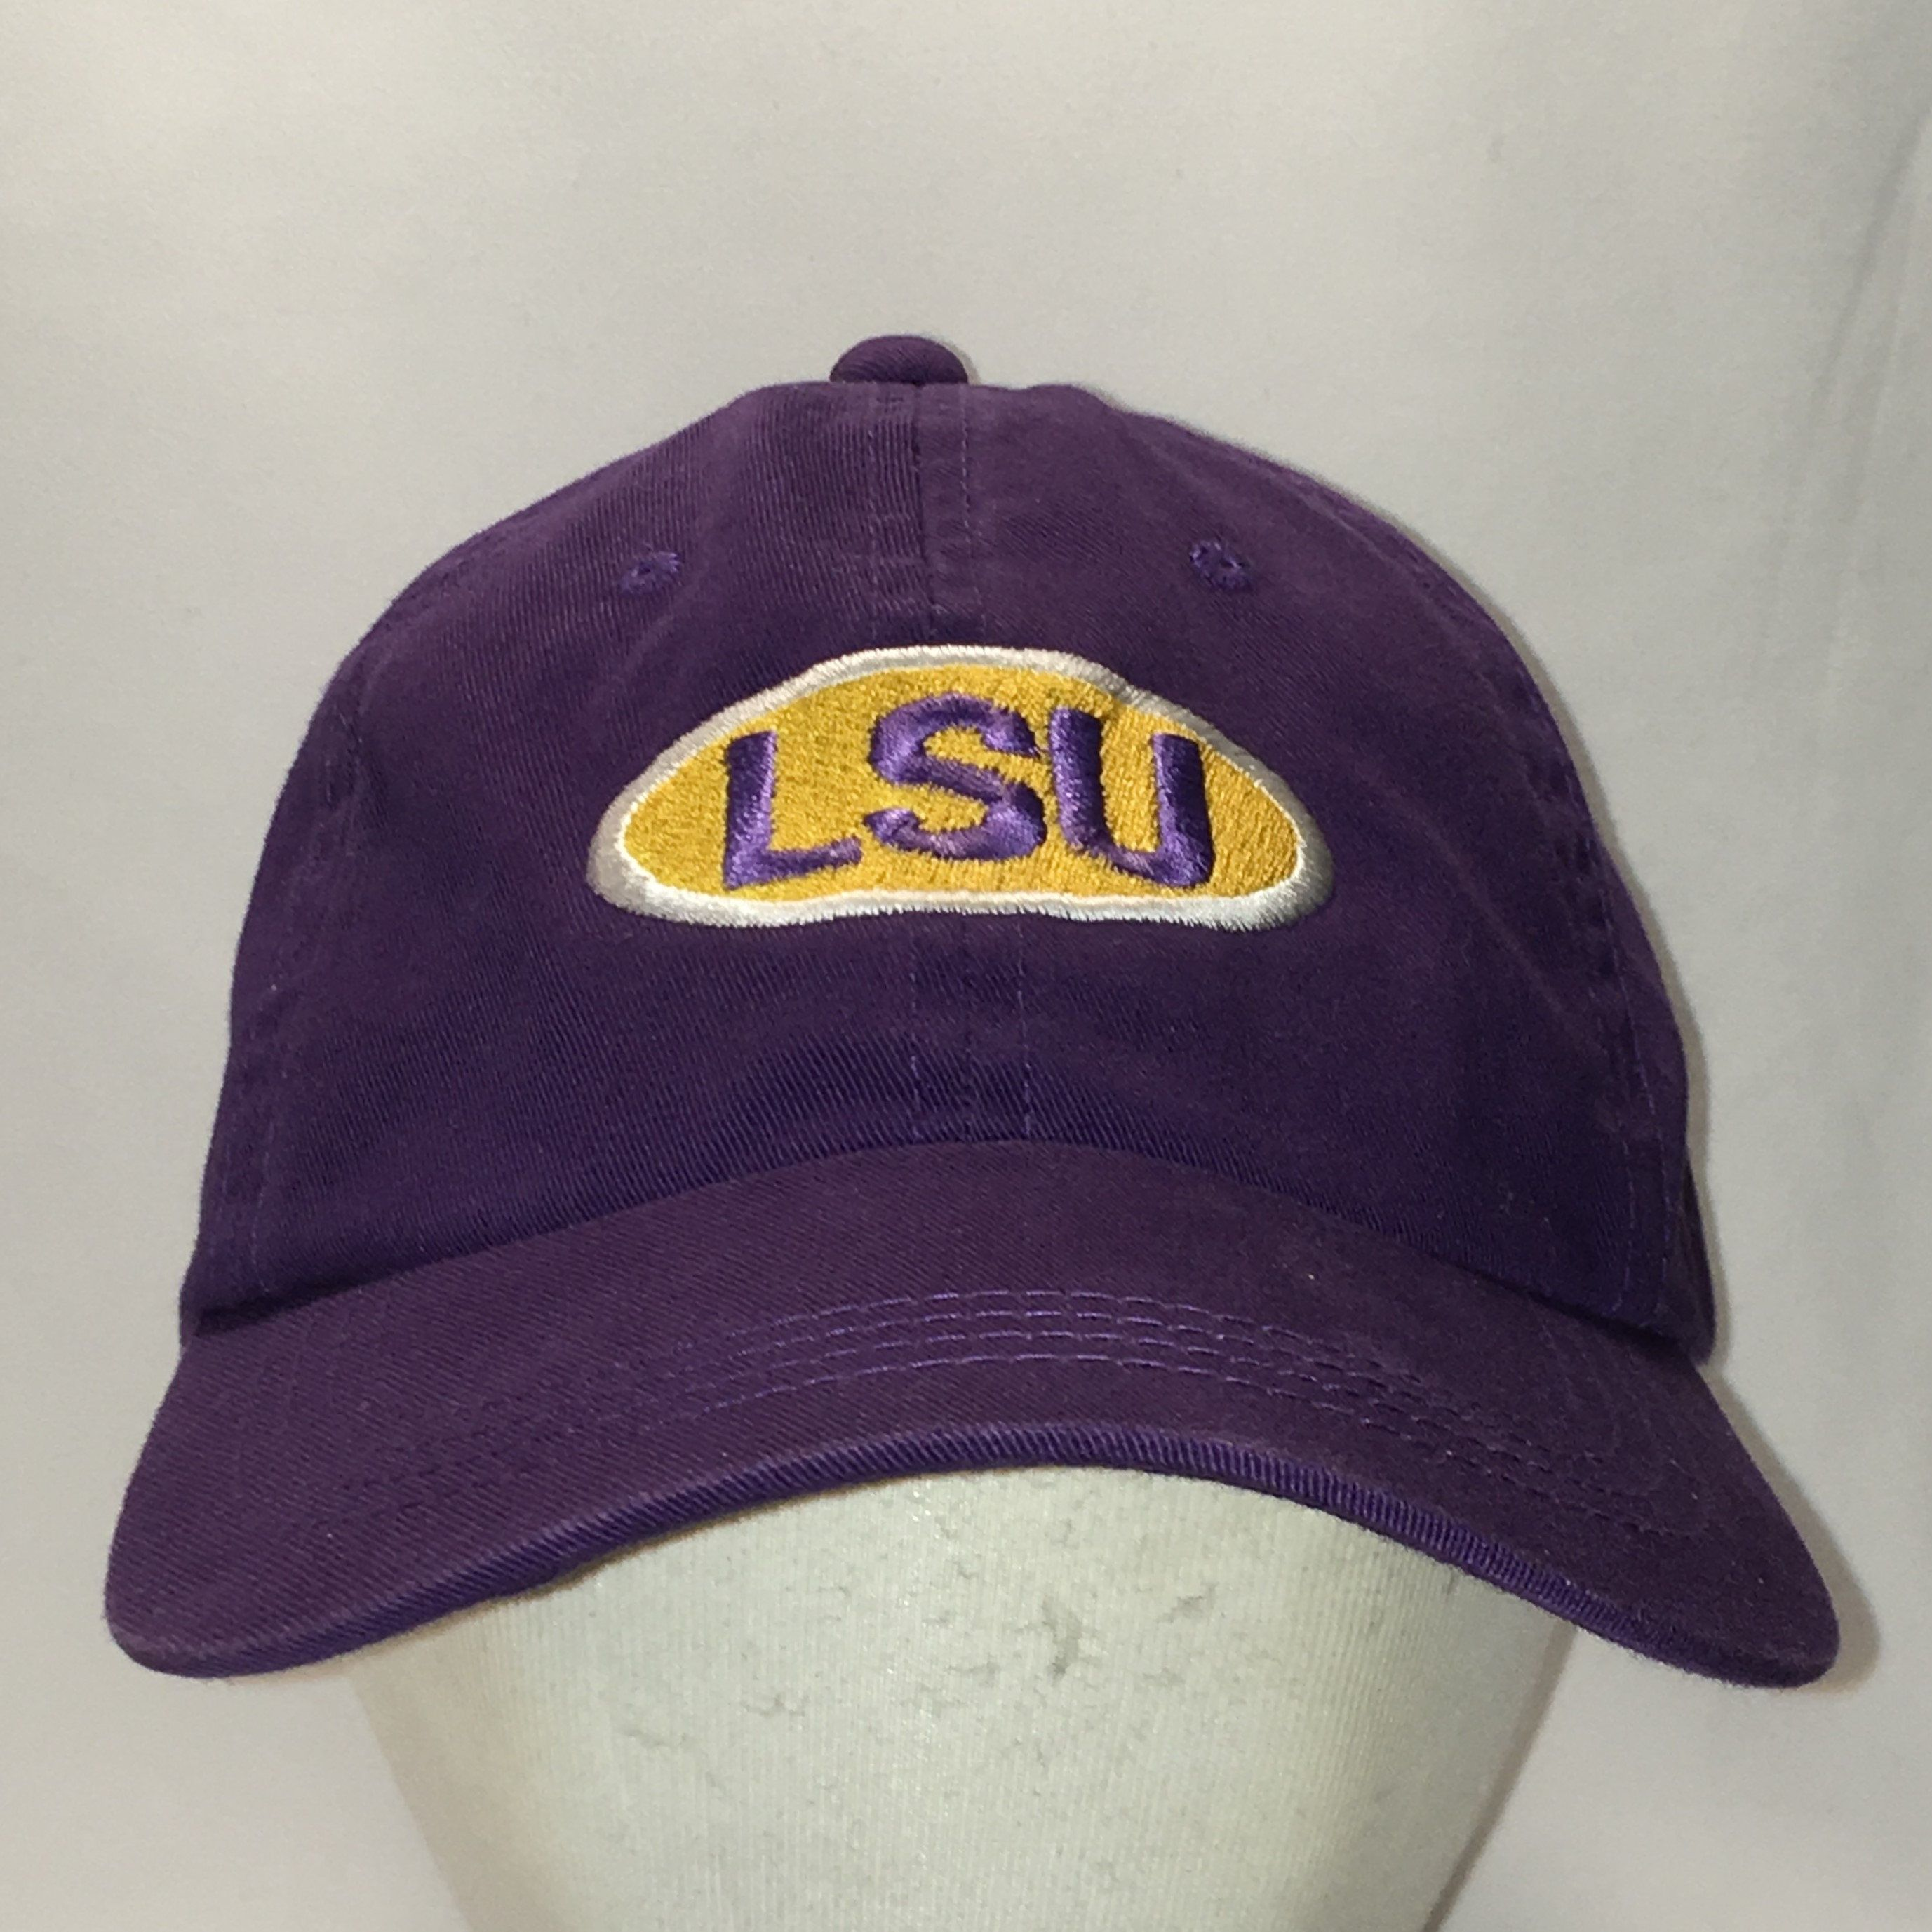 size 40 c3681 bdbca LSU Tigers Hat Purple Gold White Baseball Cap Vintage NCAA Dad Caps  Louisiana State University College